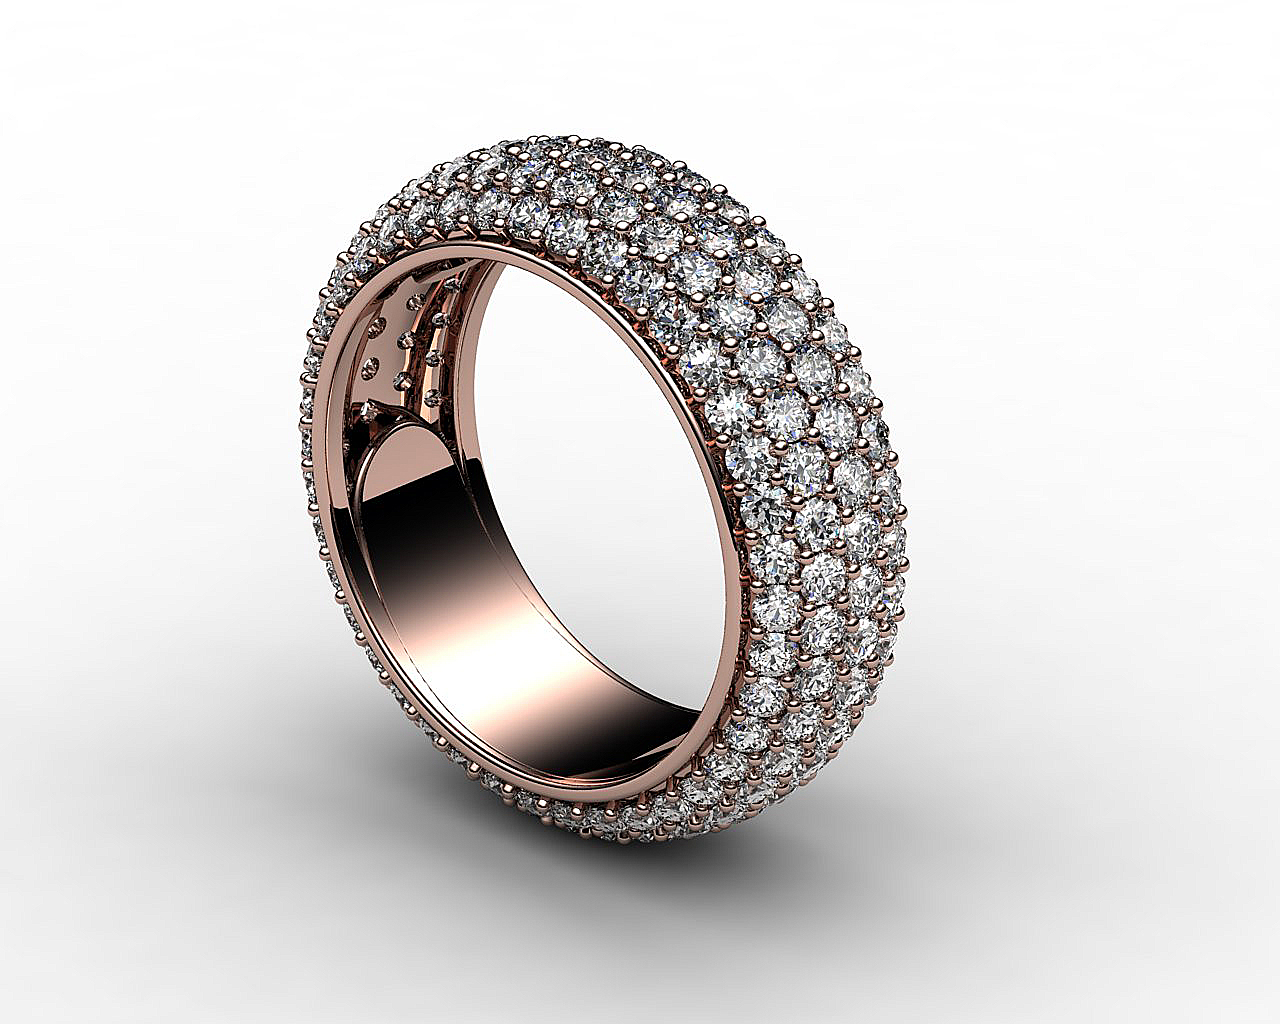 Jewel Ring In White Gold With Full Diamond 3d Model 3d